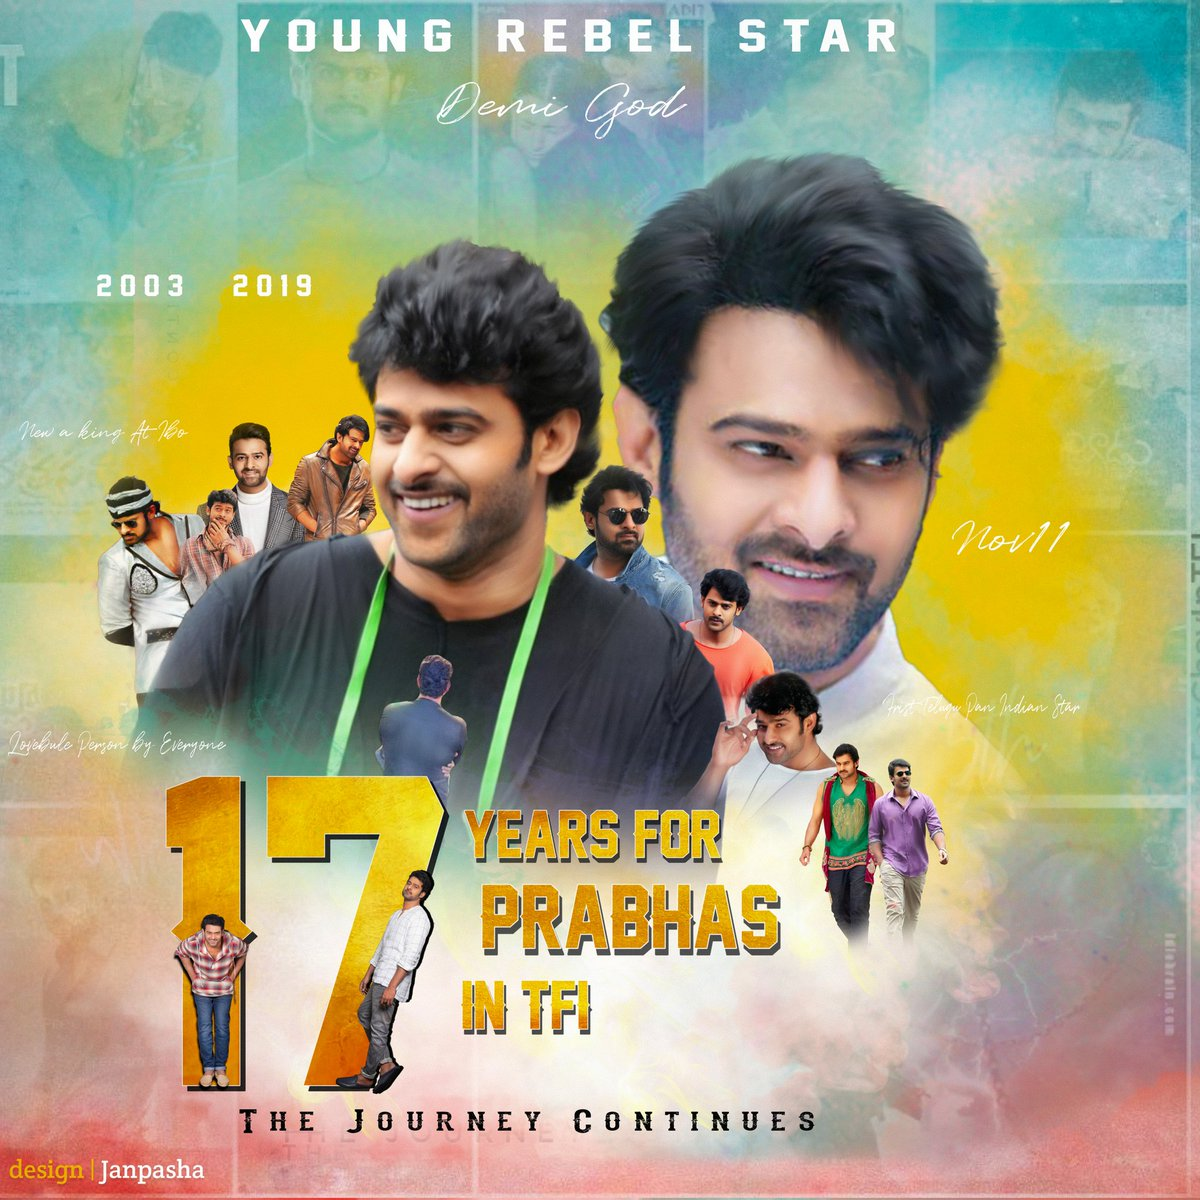 From #Eeshwar To #Saaho...  From Young Rebel Star To REBEL STAR  17 Triumphant Years of Rebel Star #Prabhas   #17TriumphantYrsOfPrabhasEra<br>http://pic.twitter.com/XnWivzCGC1